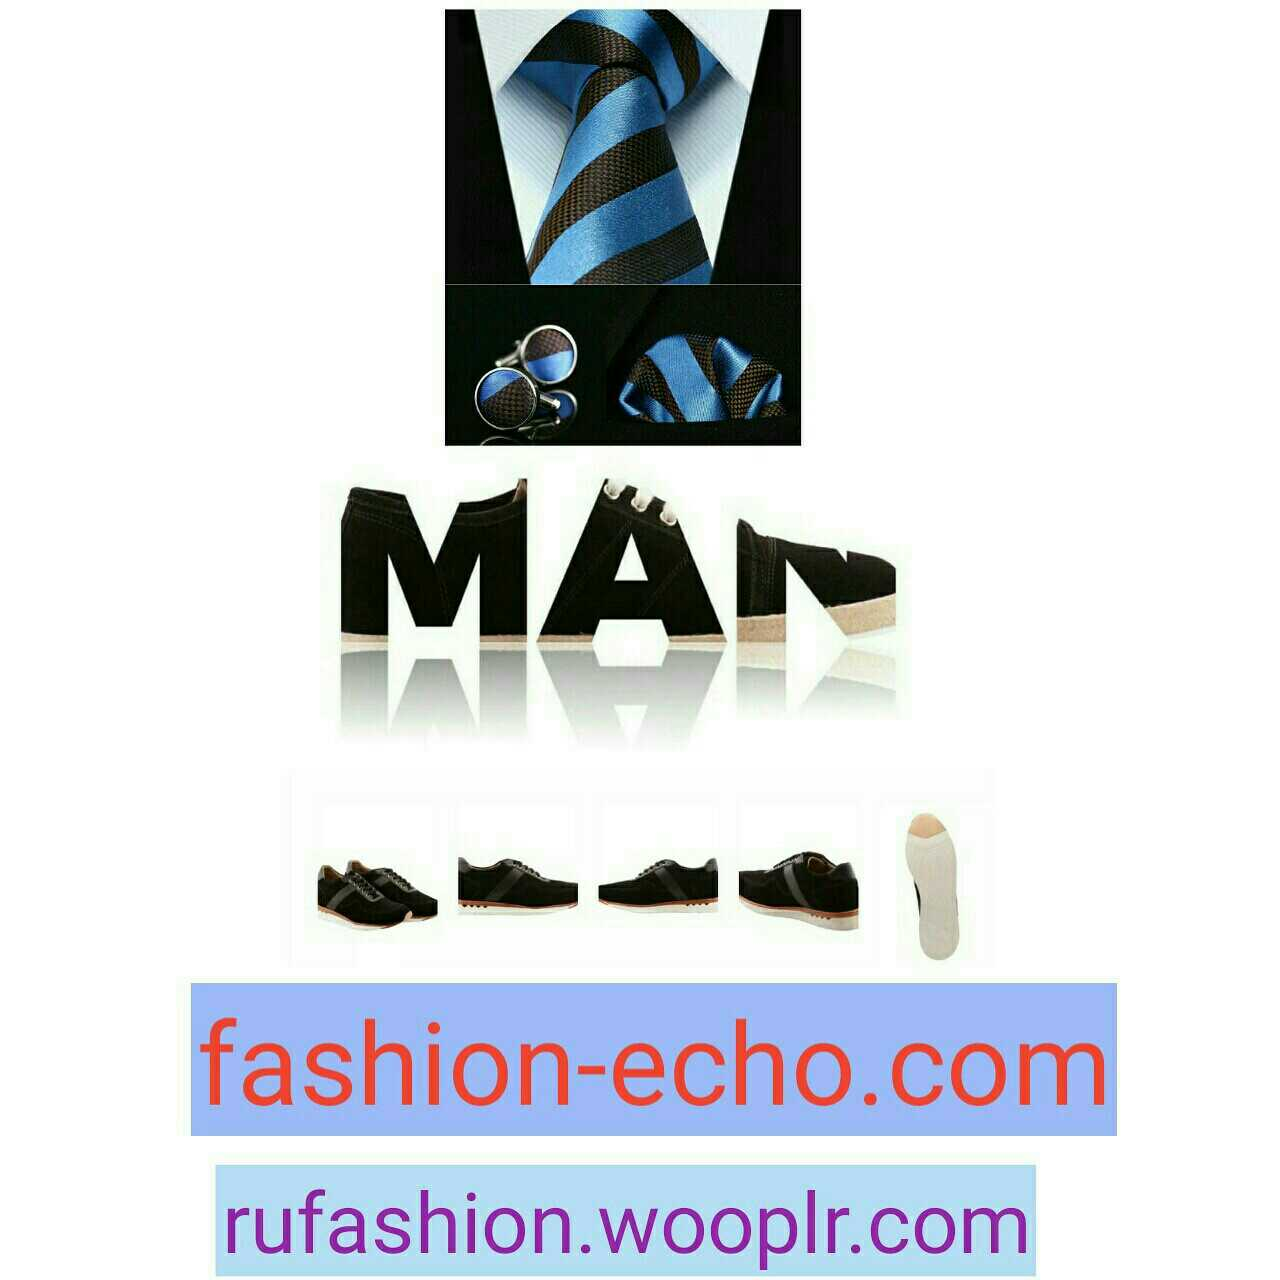 Fashion echo dot com  Bloging(Learner,wooplr#fashion influencer).        website :fashion-echo.com